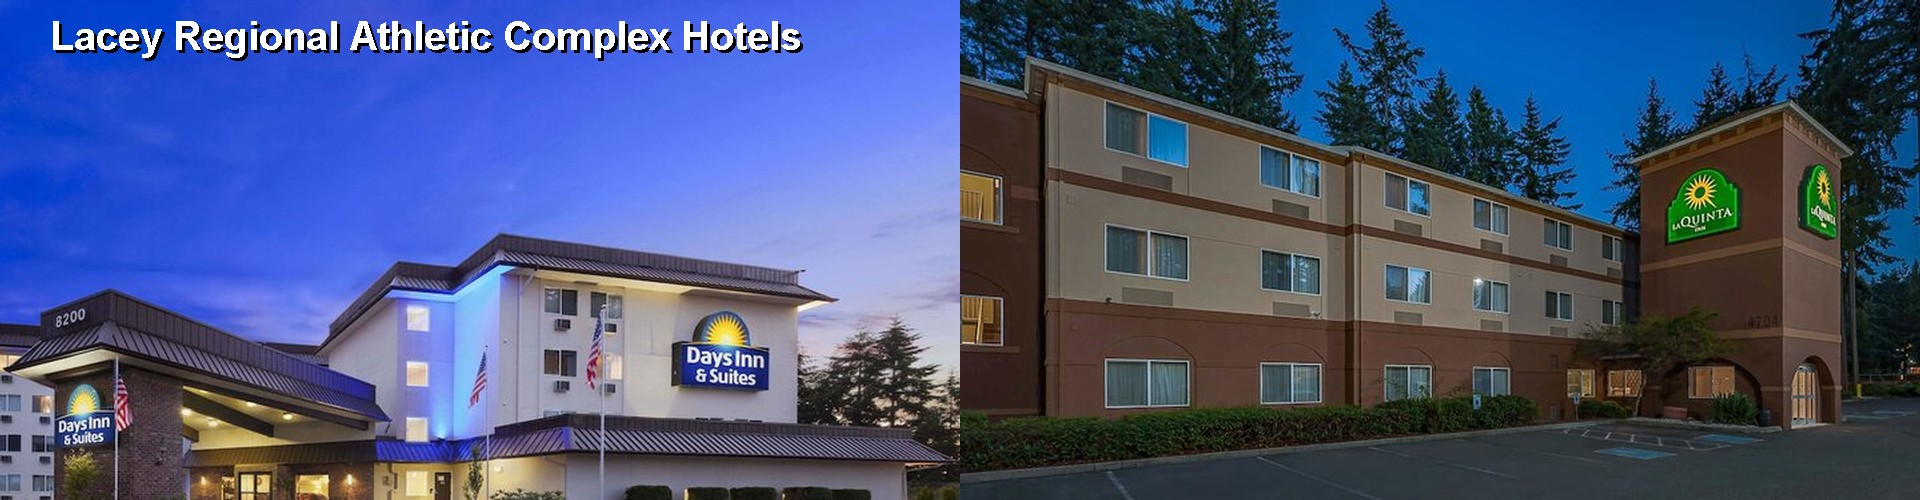 5 Best Hotels near Lacey Regional Athletic Complex